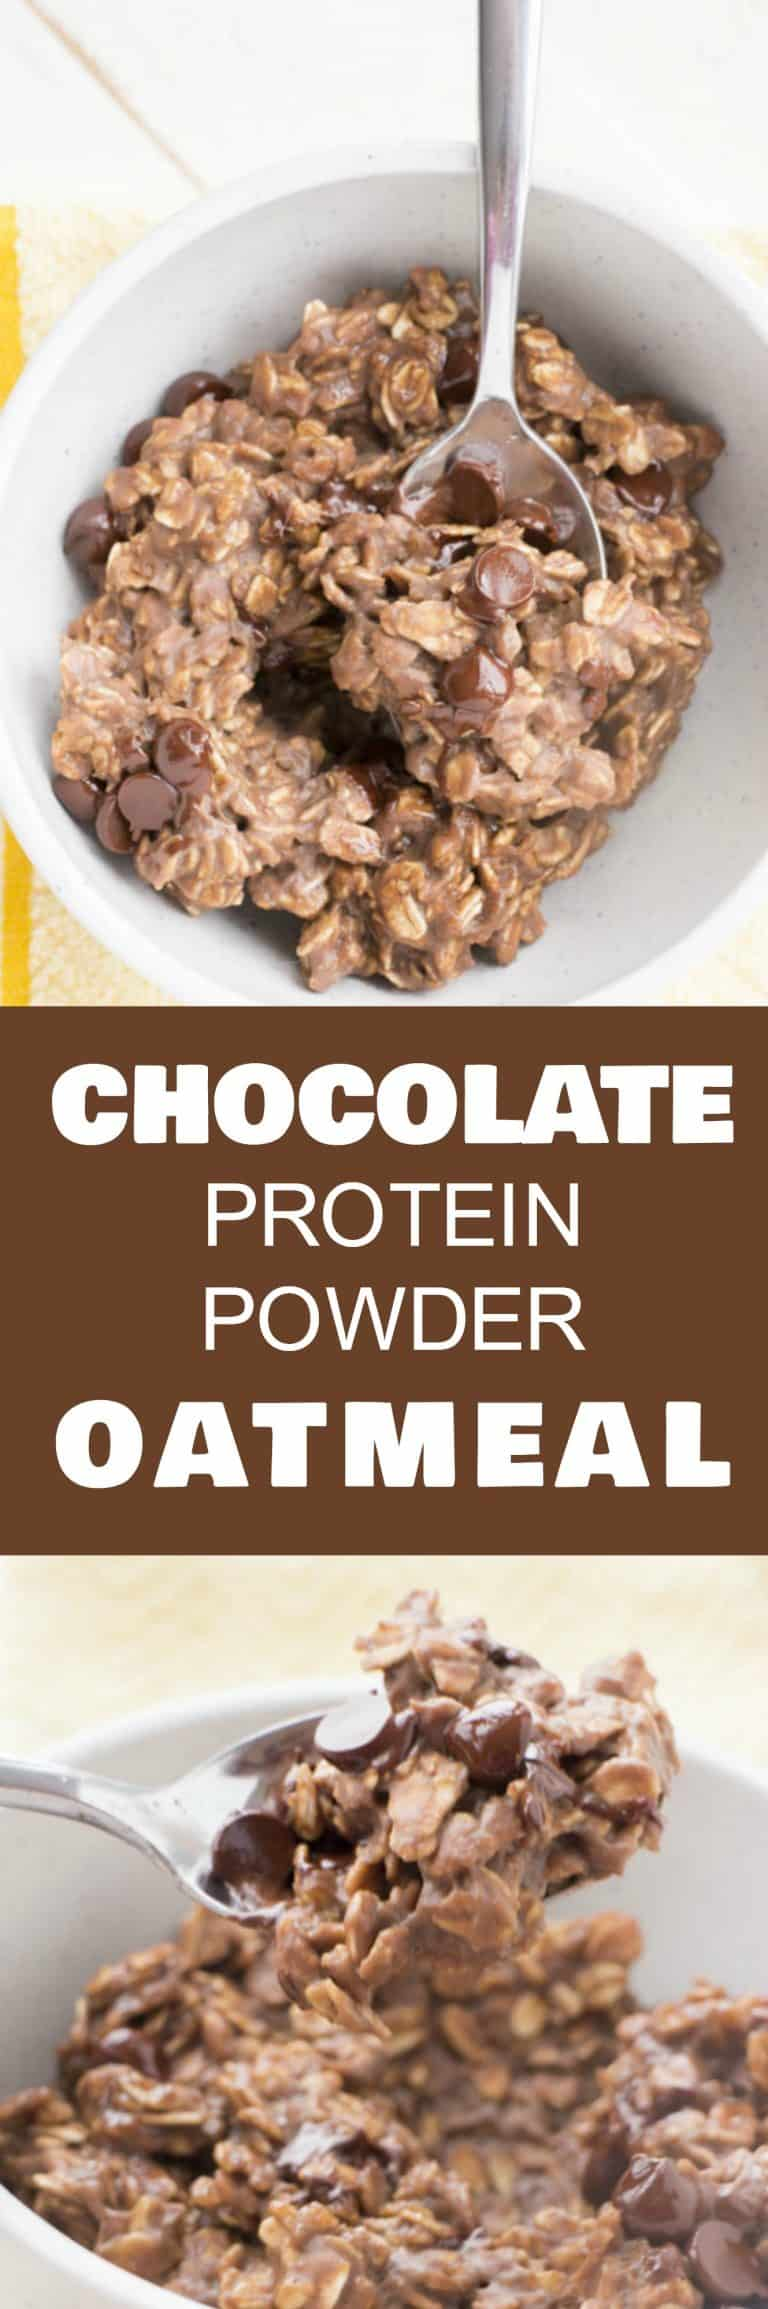 Chocolate Protein Powder Oatmeal #proteinpowderpancakes